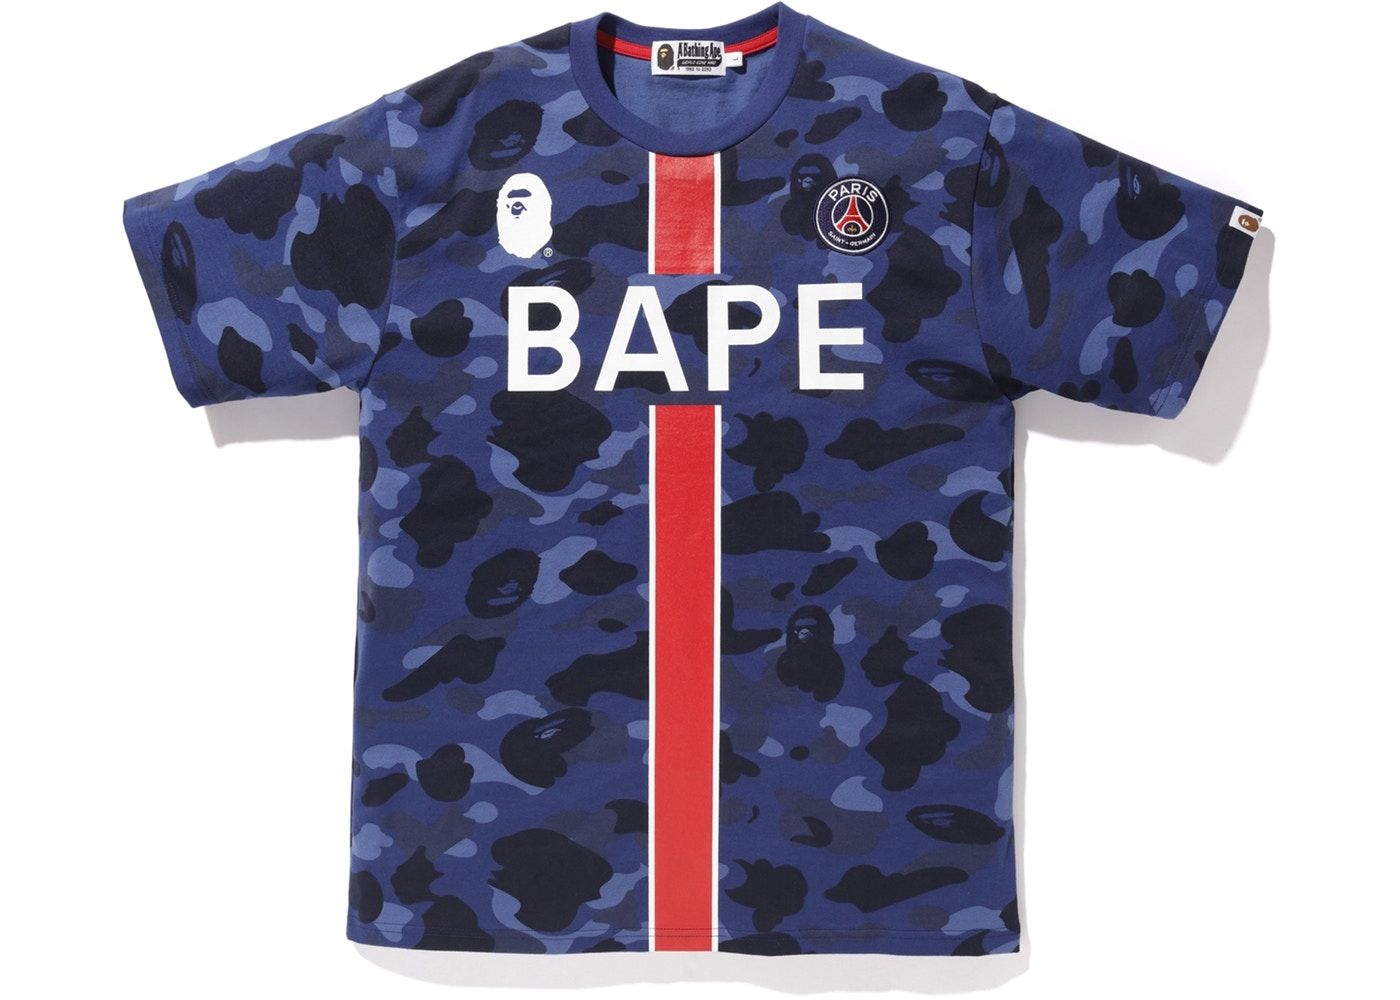 57cde73f Buy and sell authentic BAPE streetwear on StockX including the BAPE x PSG  Tee Navy from FW18.